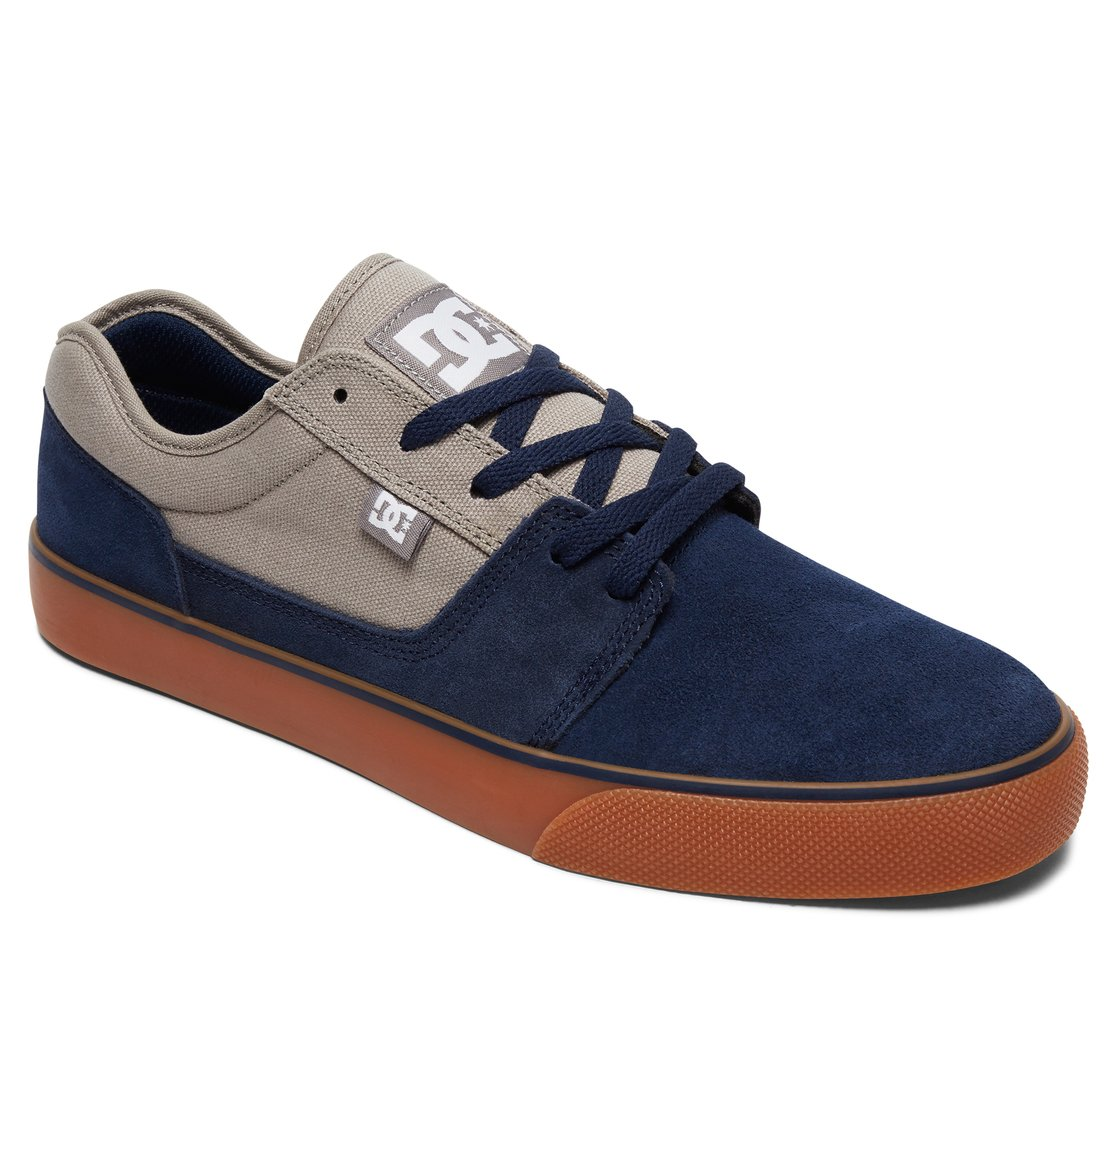 DC-Shoes-Tonik-Baskets-pour-Homme-302905 miniature 3